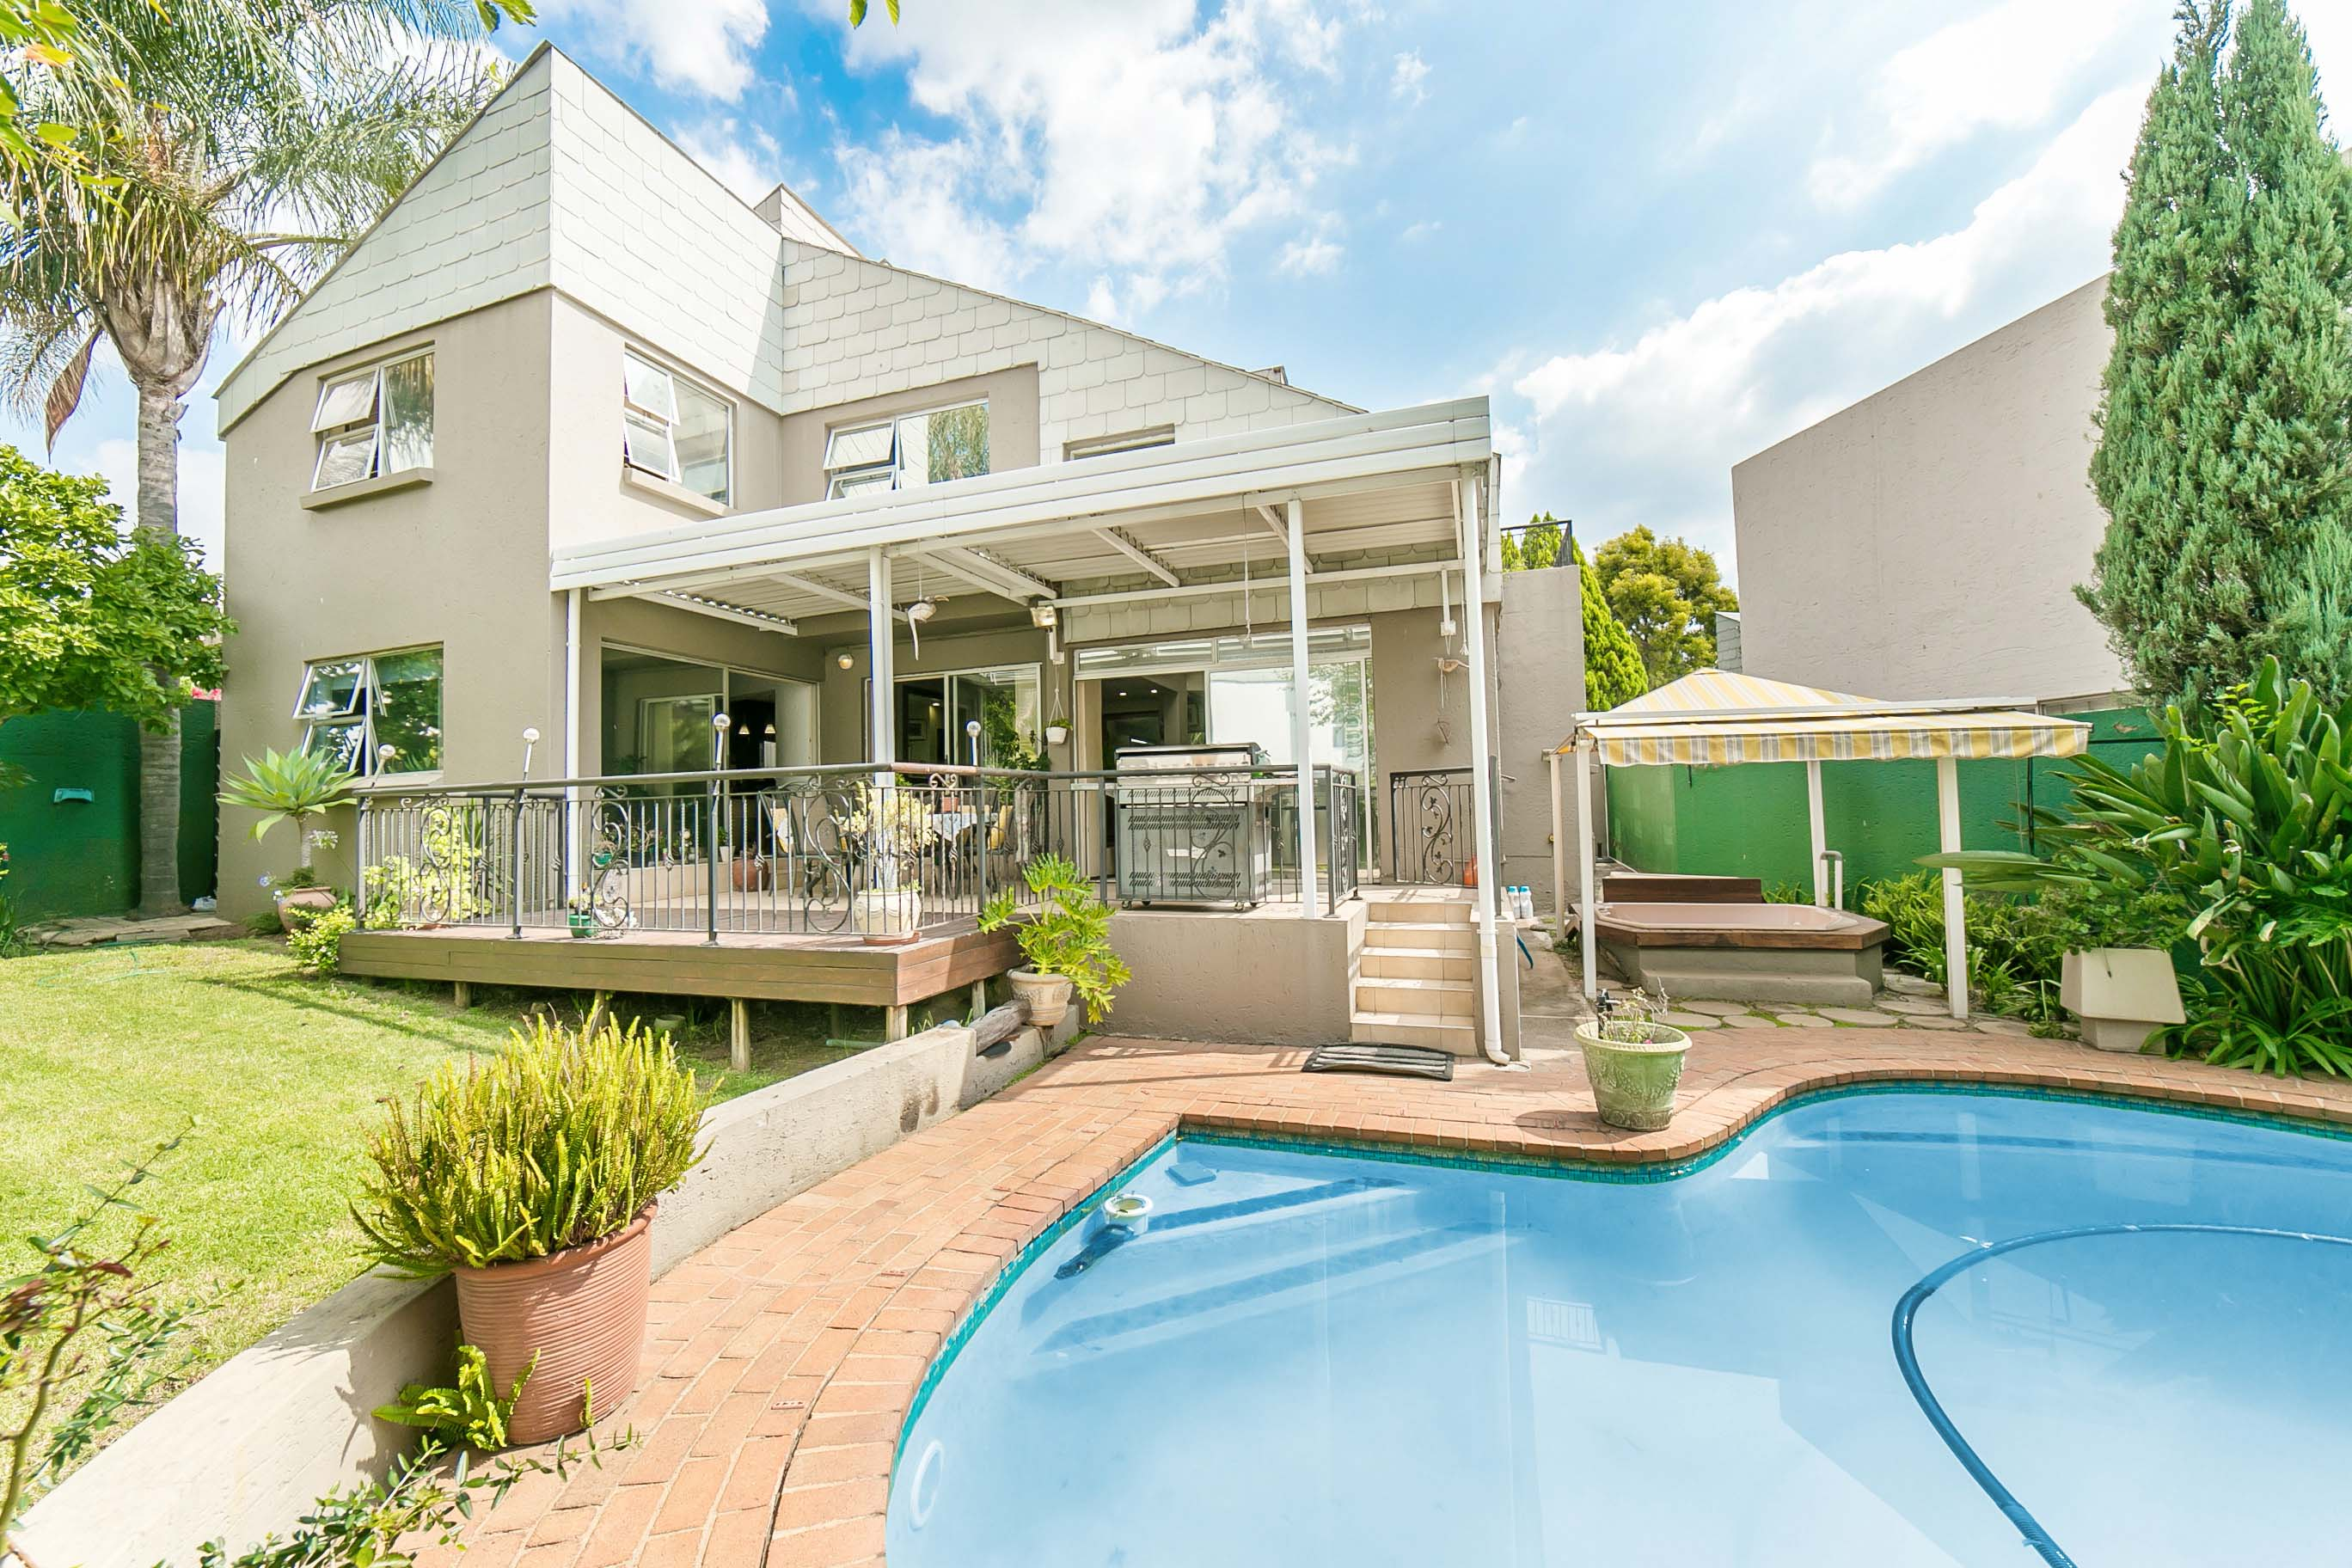 4 Bedroom House for sale in Lonehill ENT0082001 : photo#1